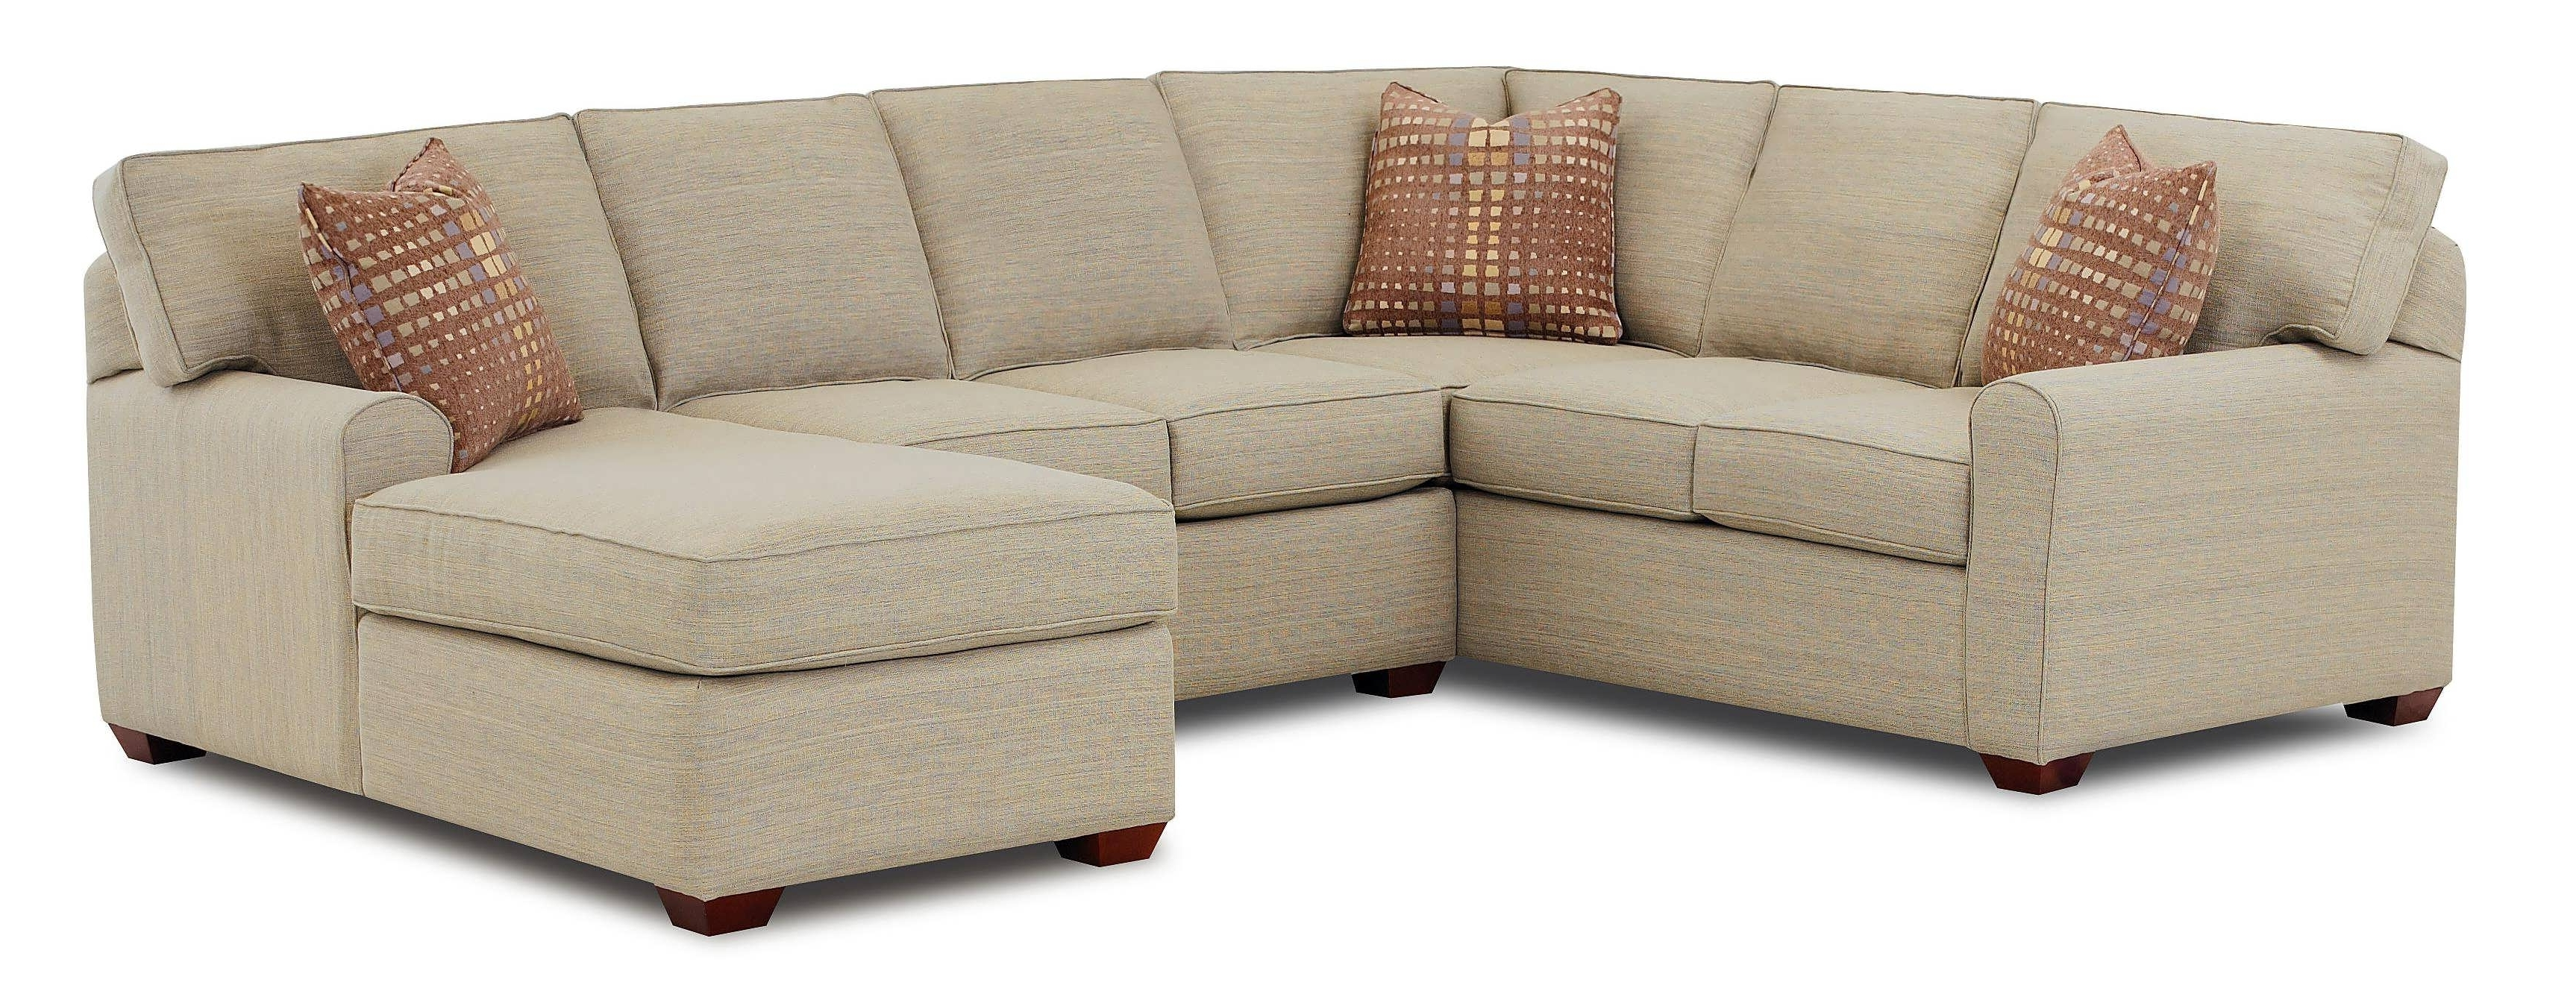 2018 Sofa Chaise Sectionals For Sofa : Most Comfortable Couch Grey Sectional With Chaise (View 2 of 15)